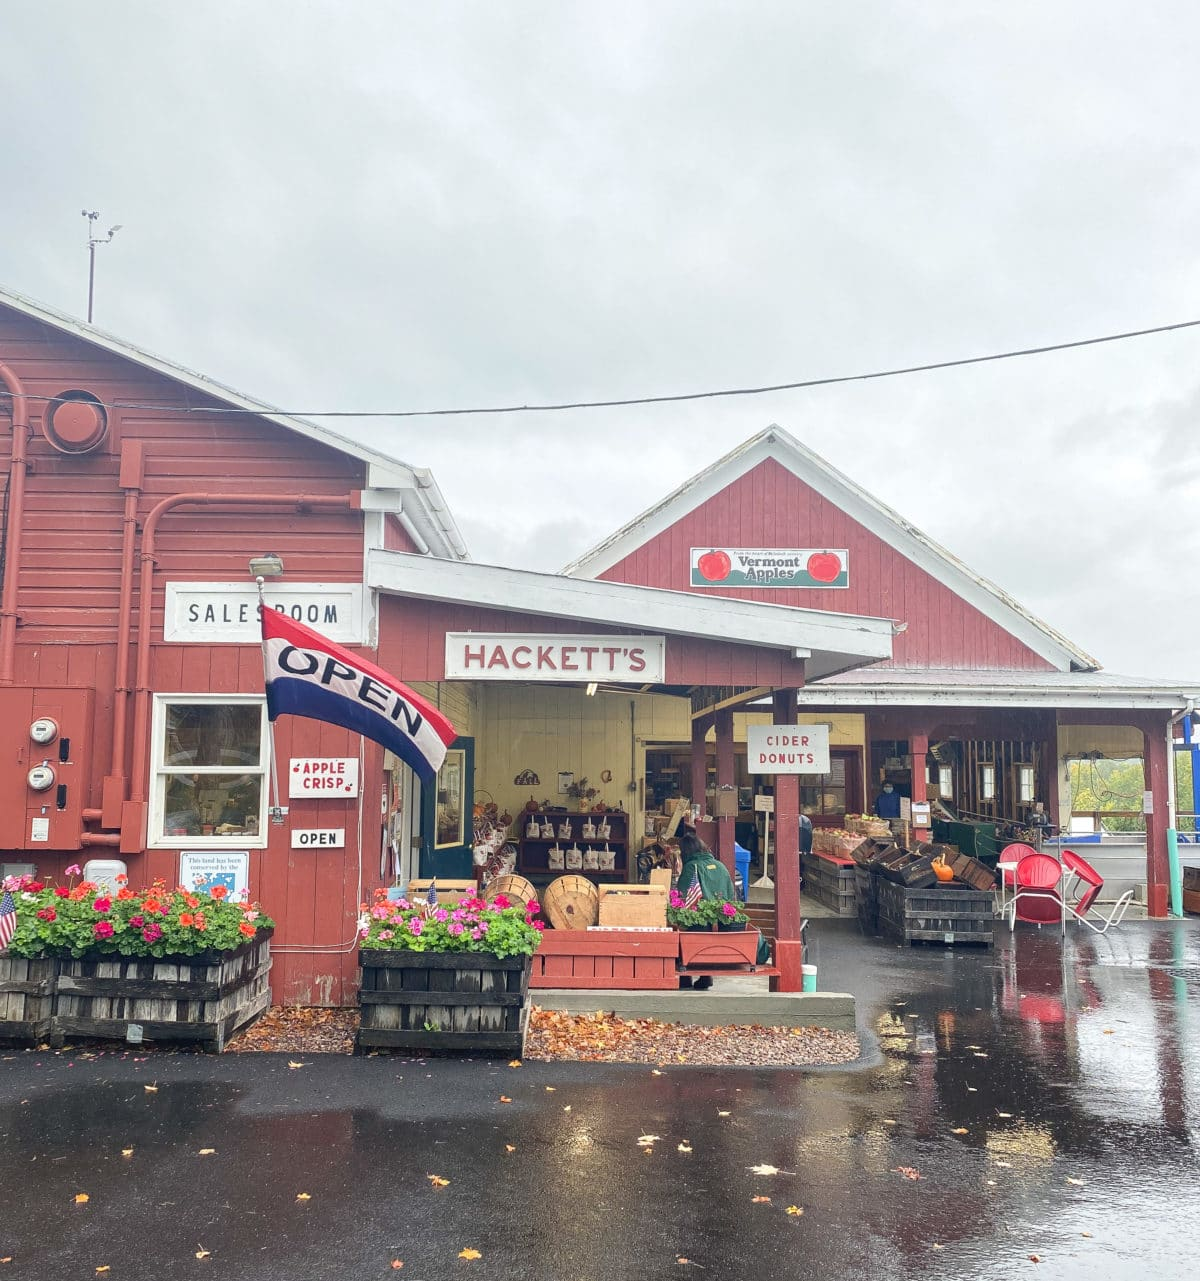 Red farm stand buidling